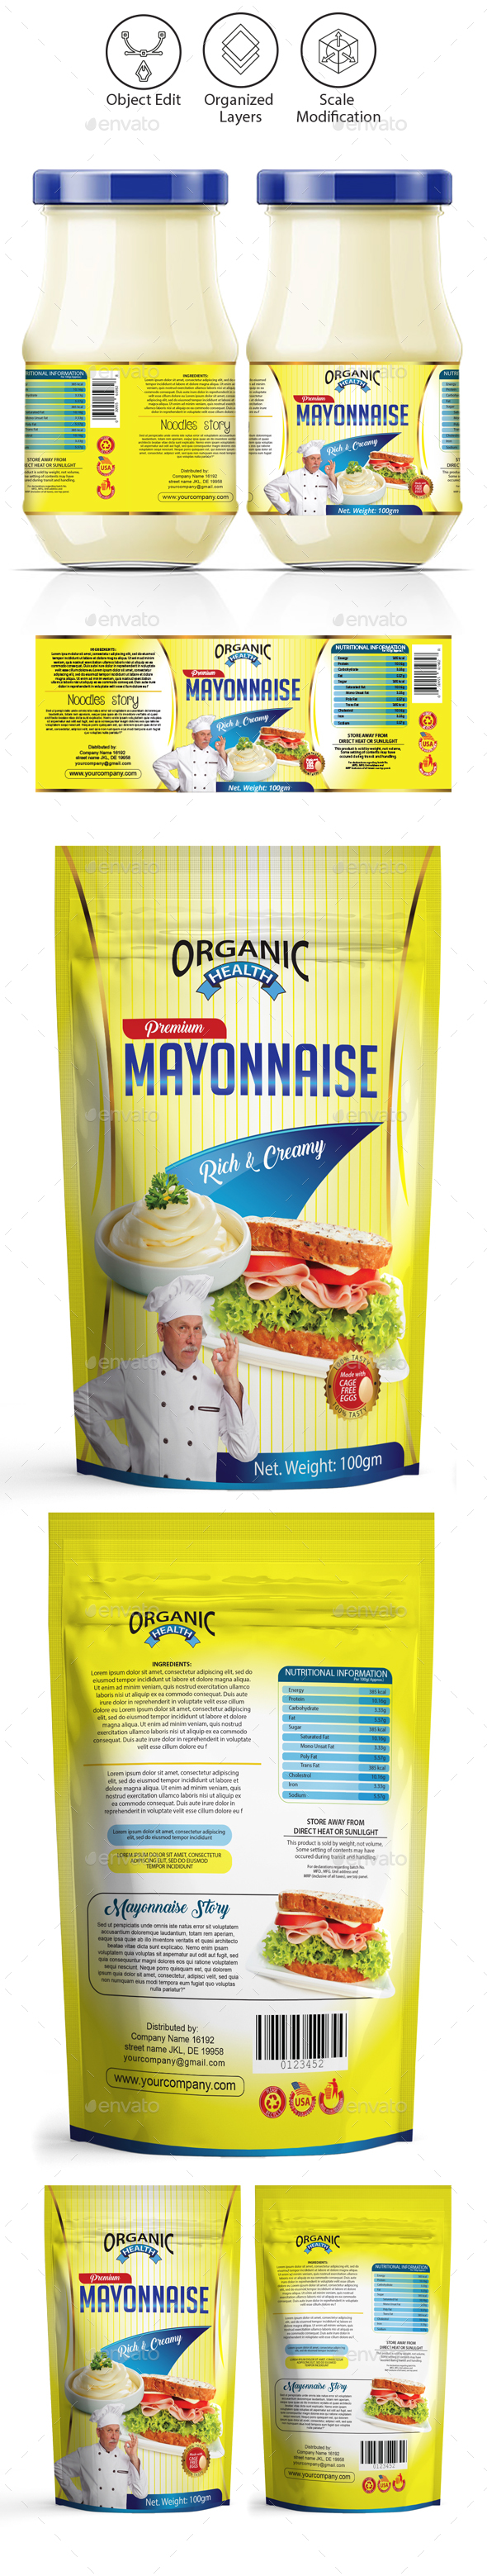 Mayonnaise / Sauce Packaging Template - Packaging Print Templates